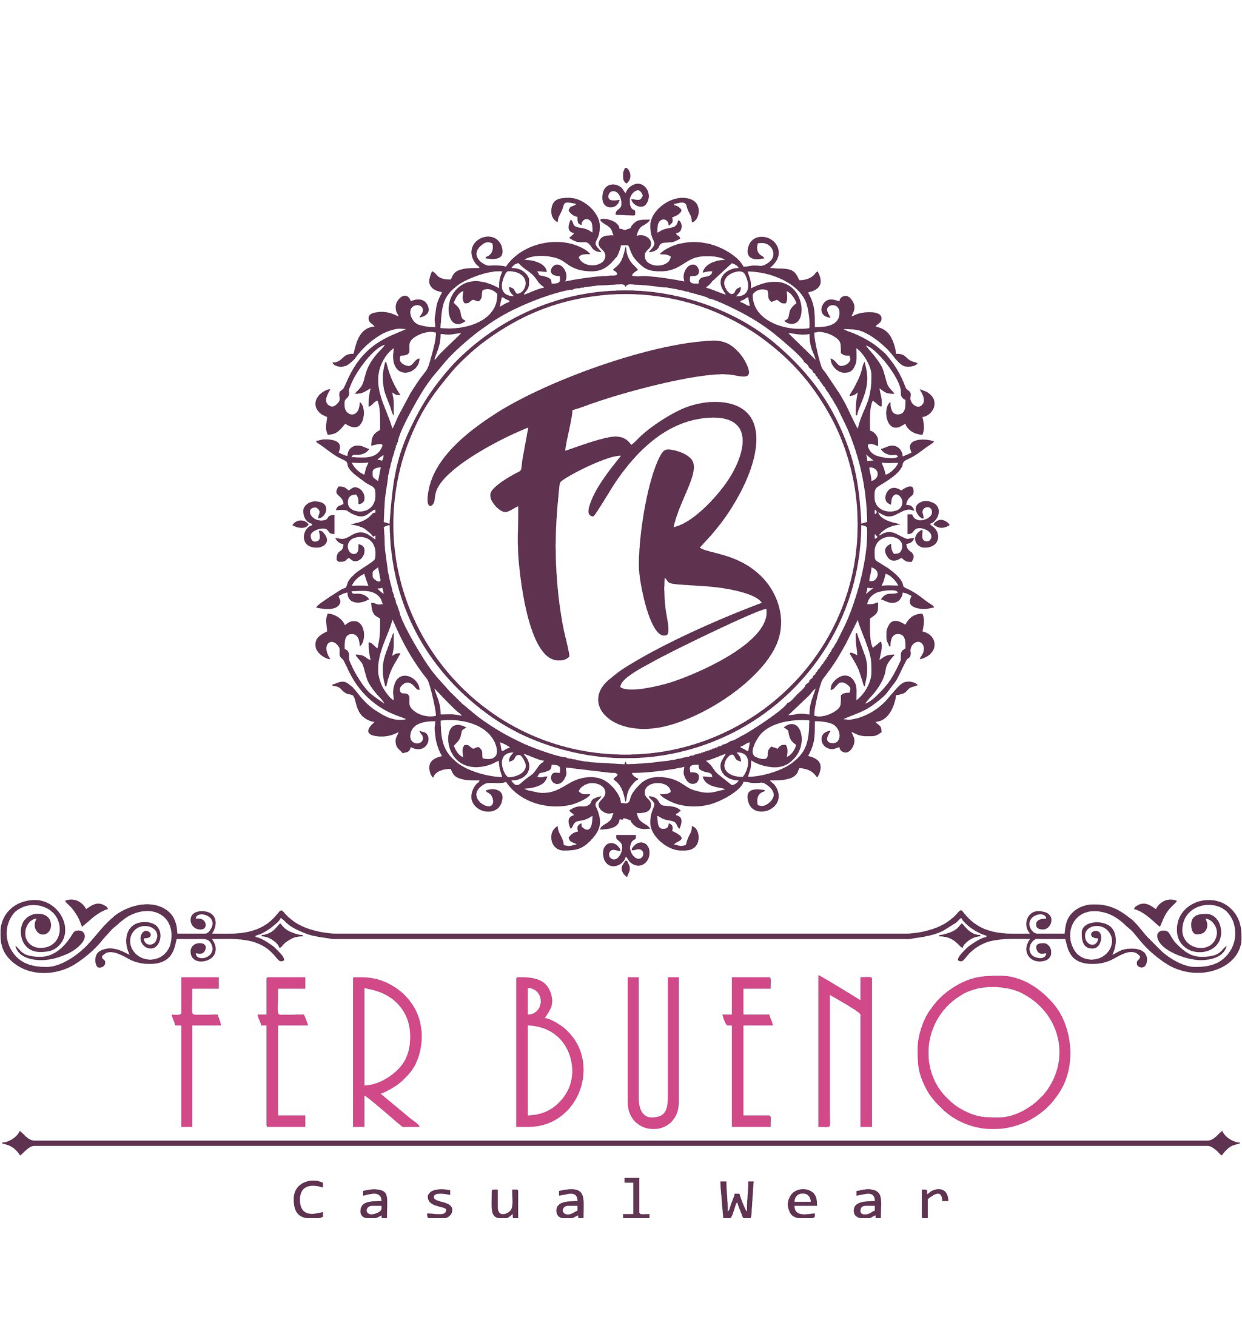 FER BUENO CASUAL WEAR